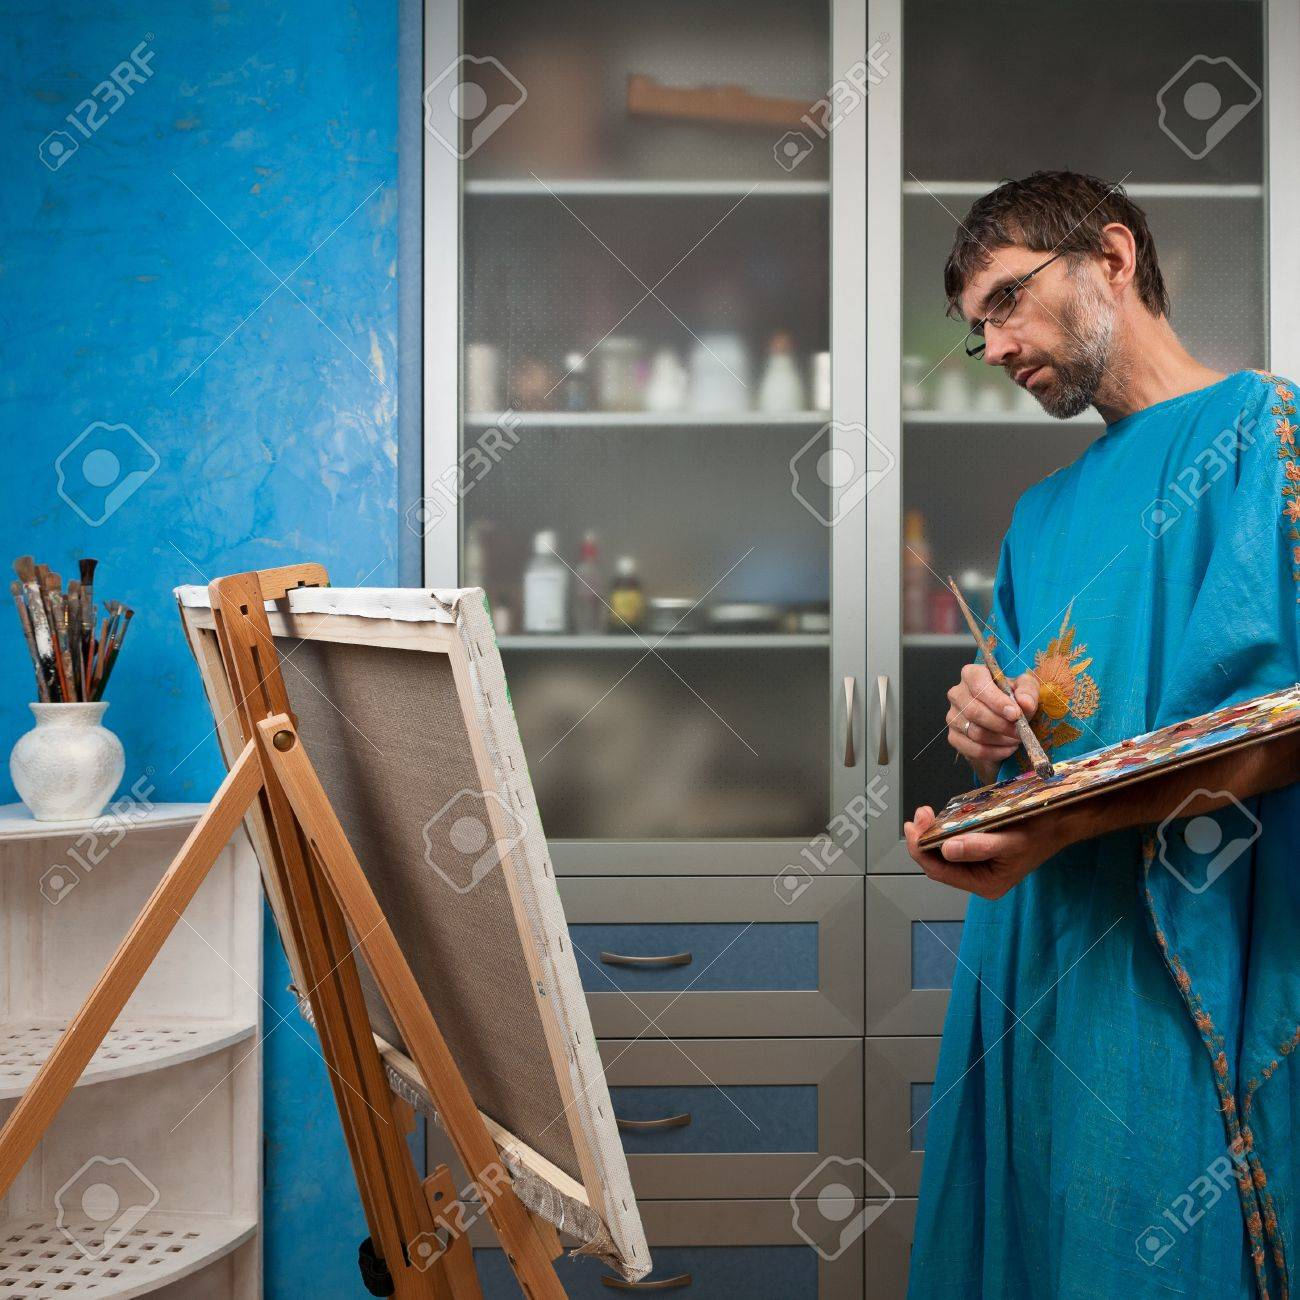 an artist paints a picture in the studio on canvas Stock Photo - 14719034